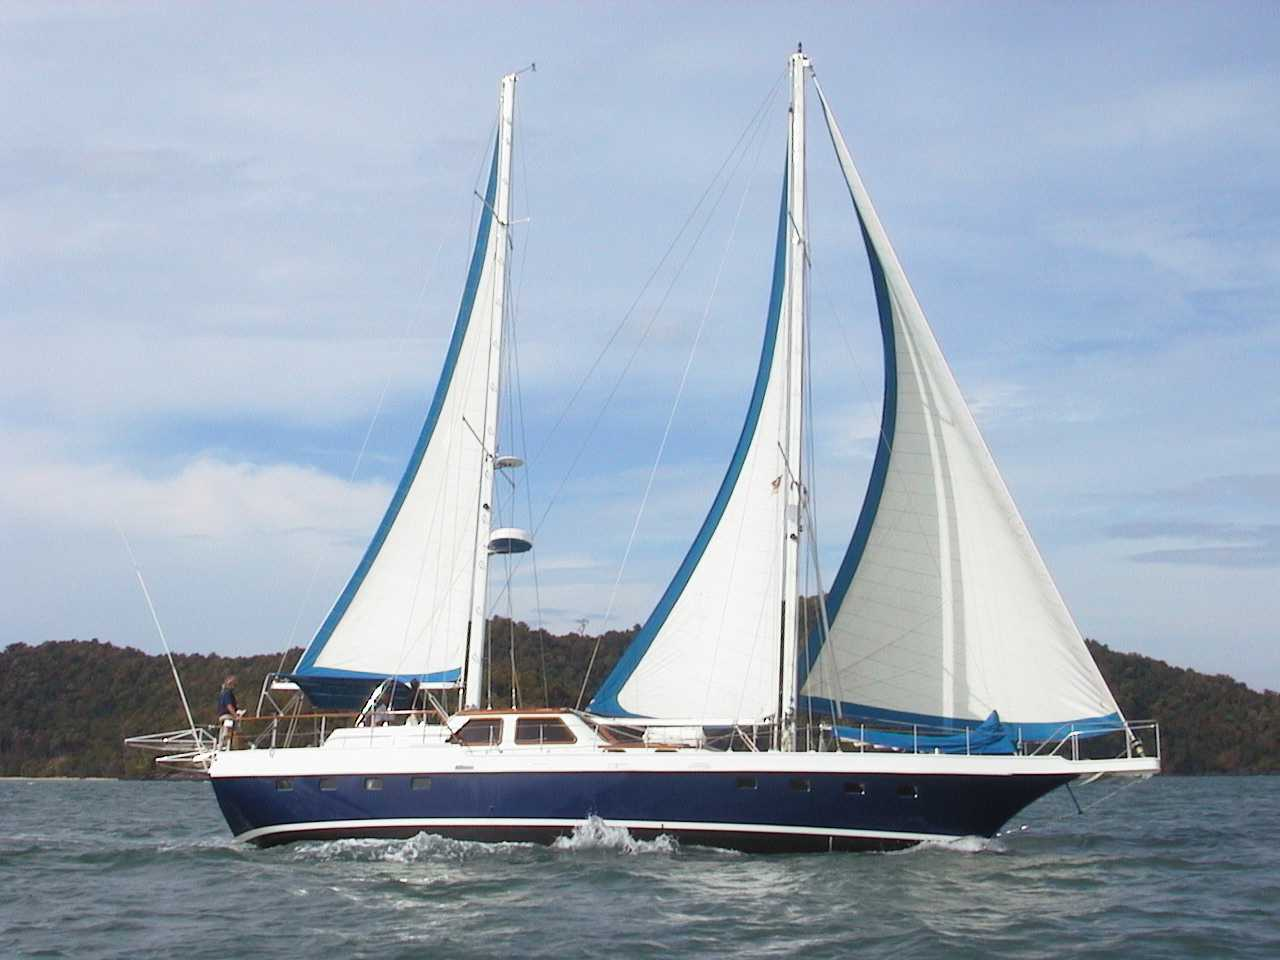 Click image for larger version  Name:Sail8.jpg Views:78 Size:68.0 KB ID:3048